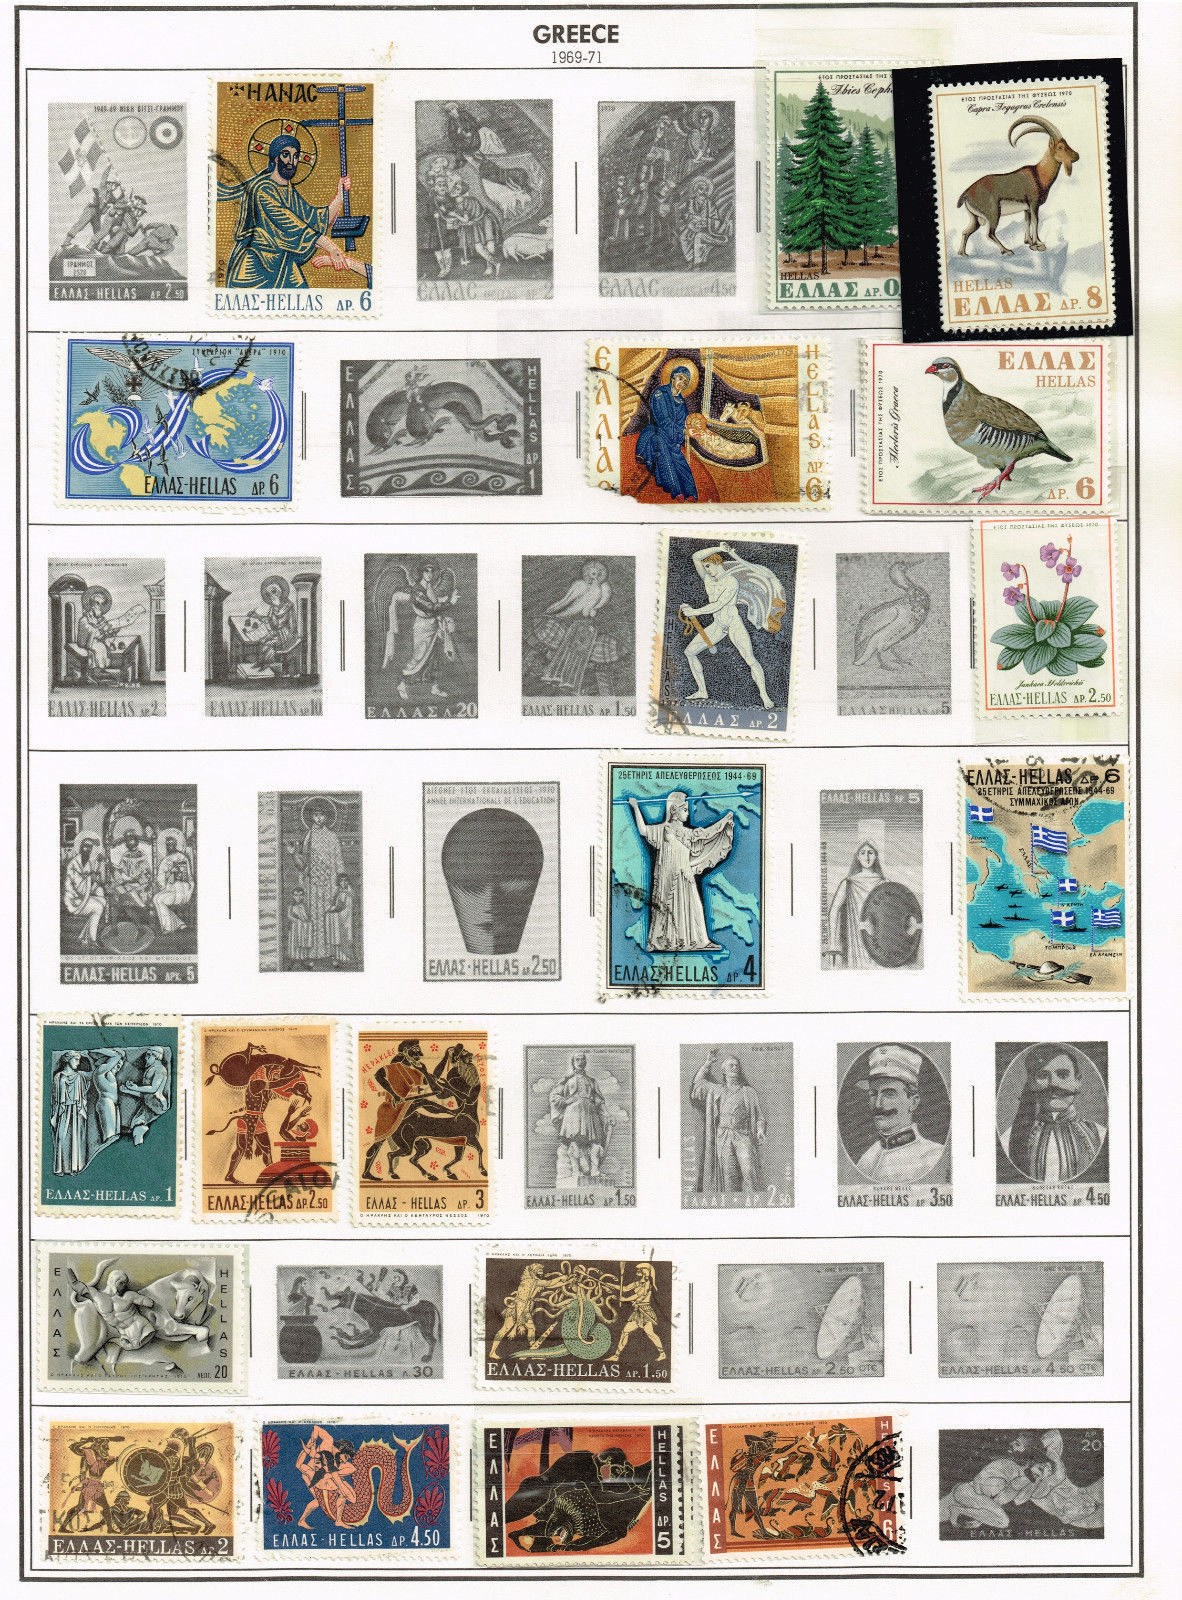 110 Greece 1961 - 1971 stamps image 6